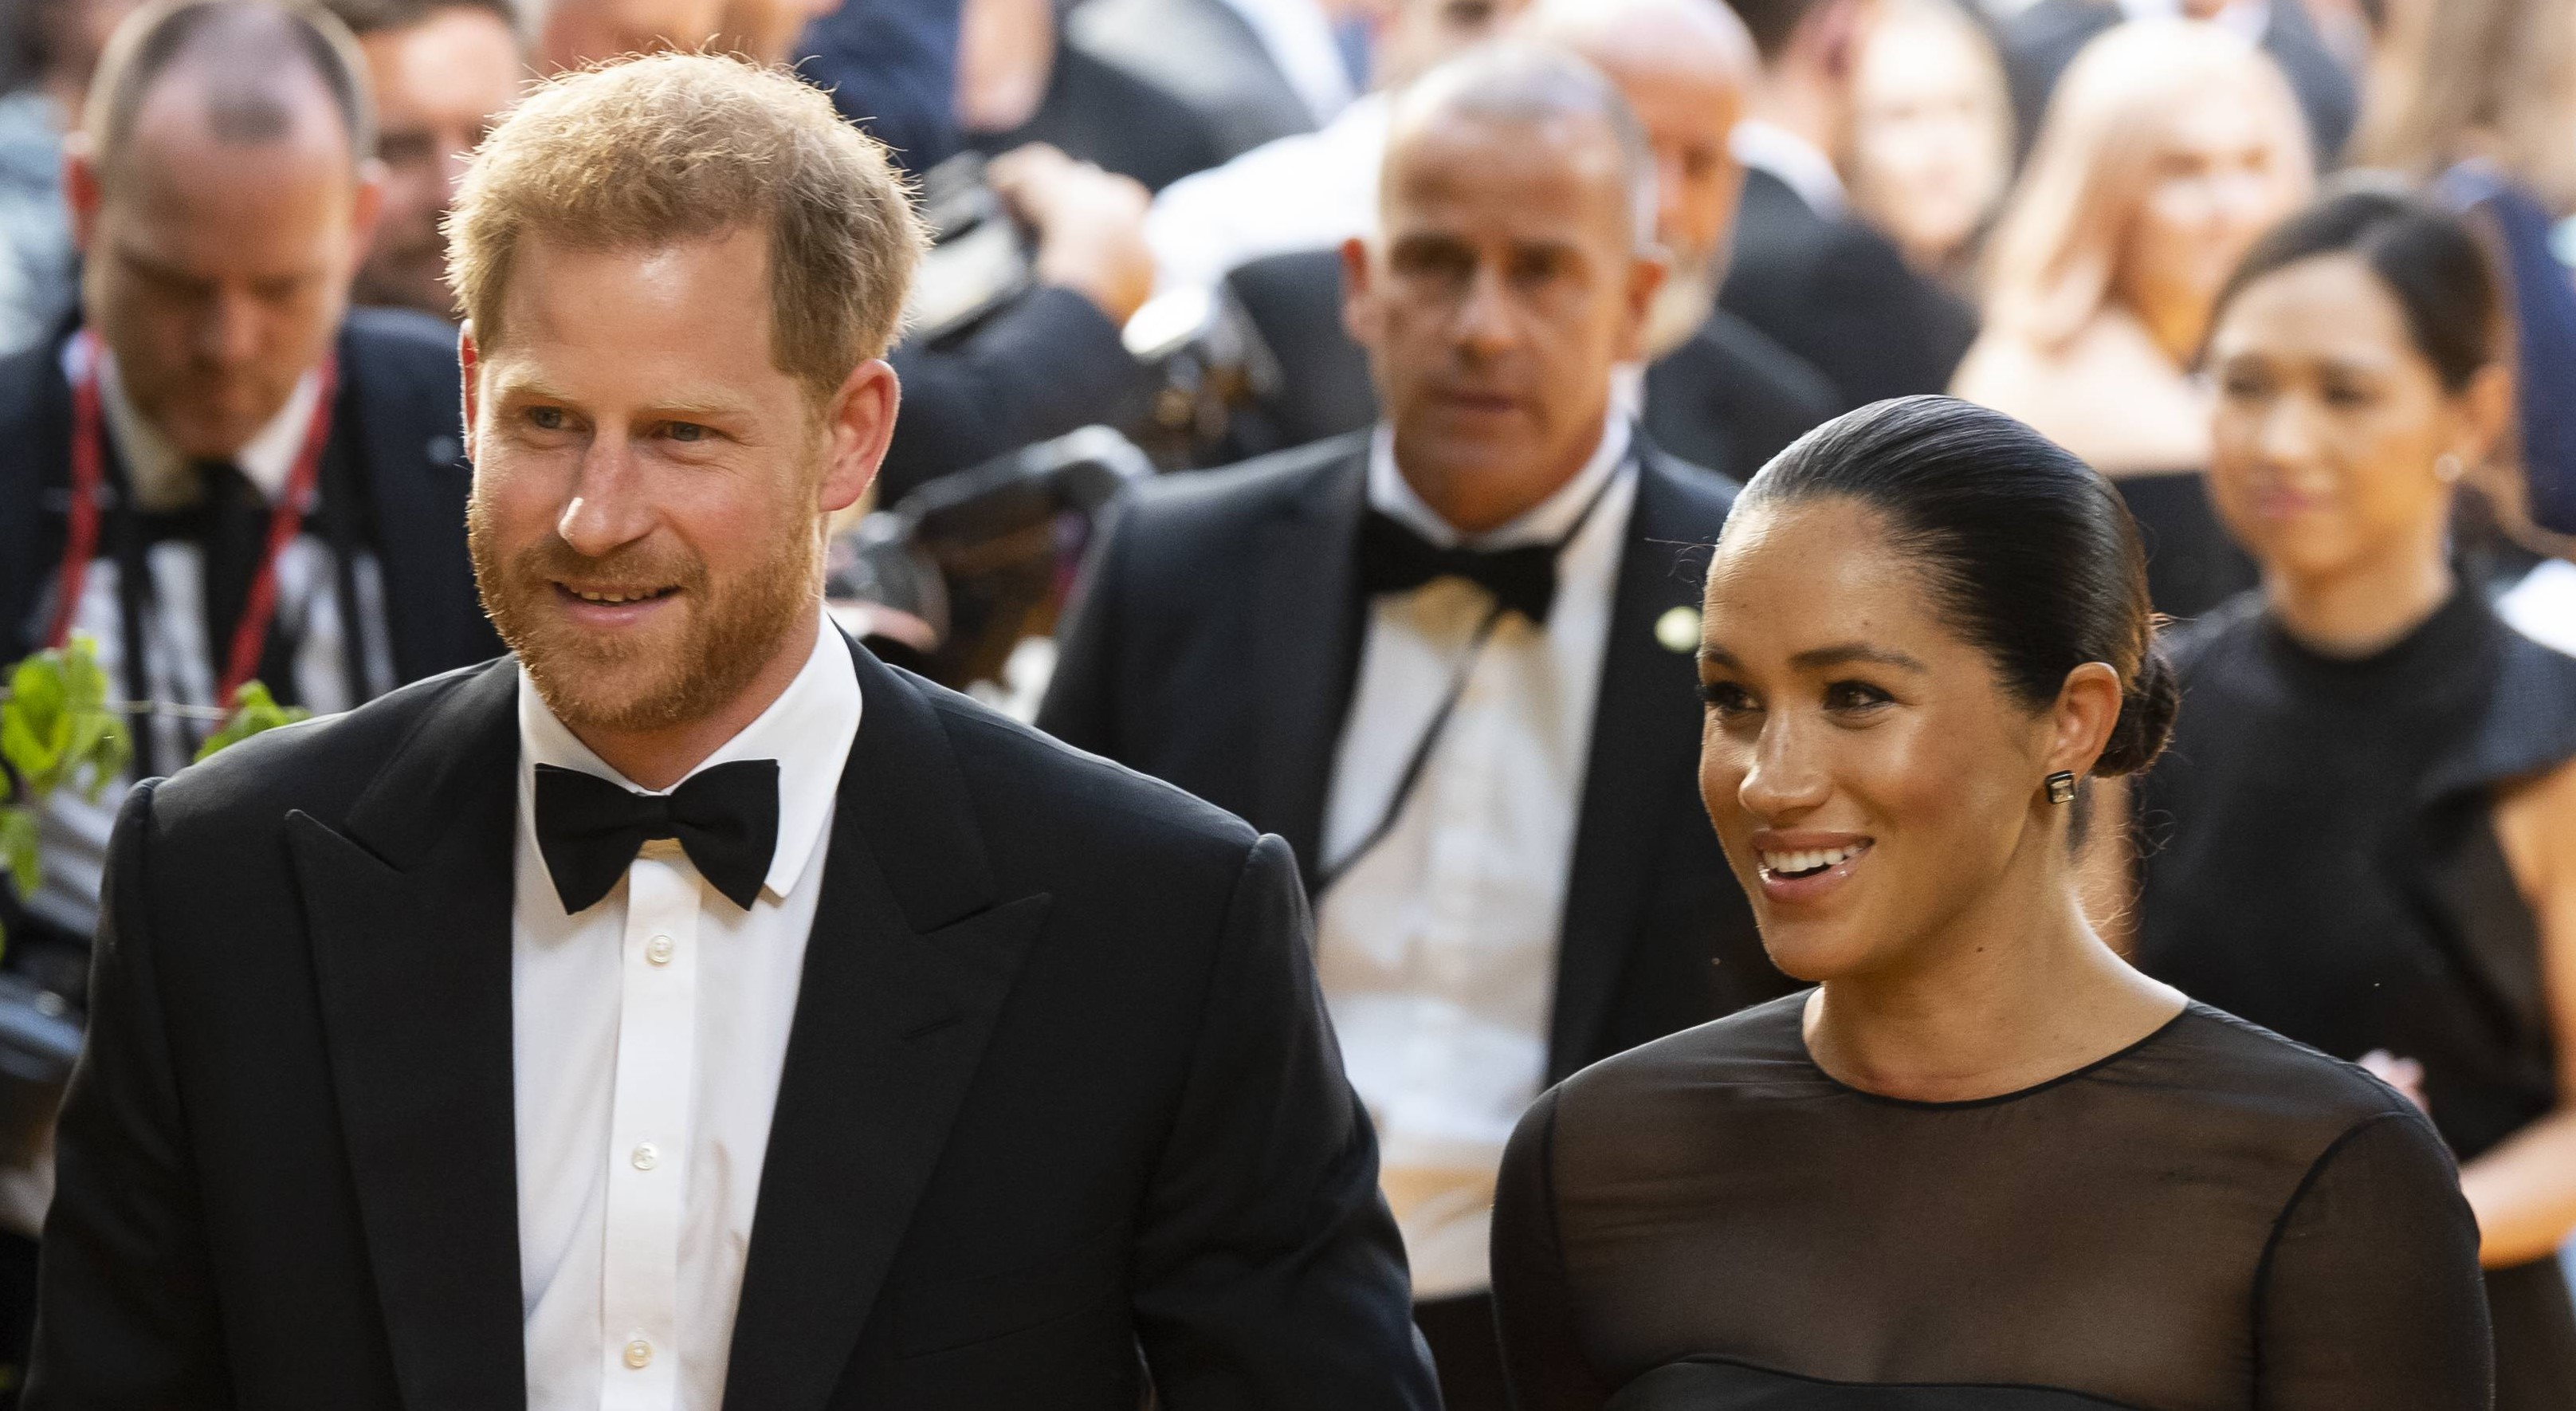 Palace staff 'causing trouble' for Harry and Meghan as they start new foundation?